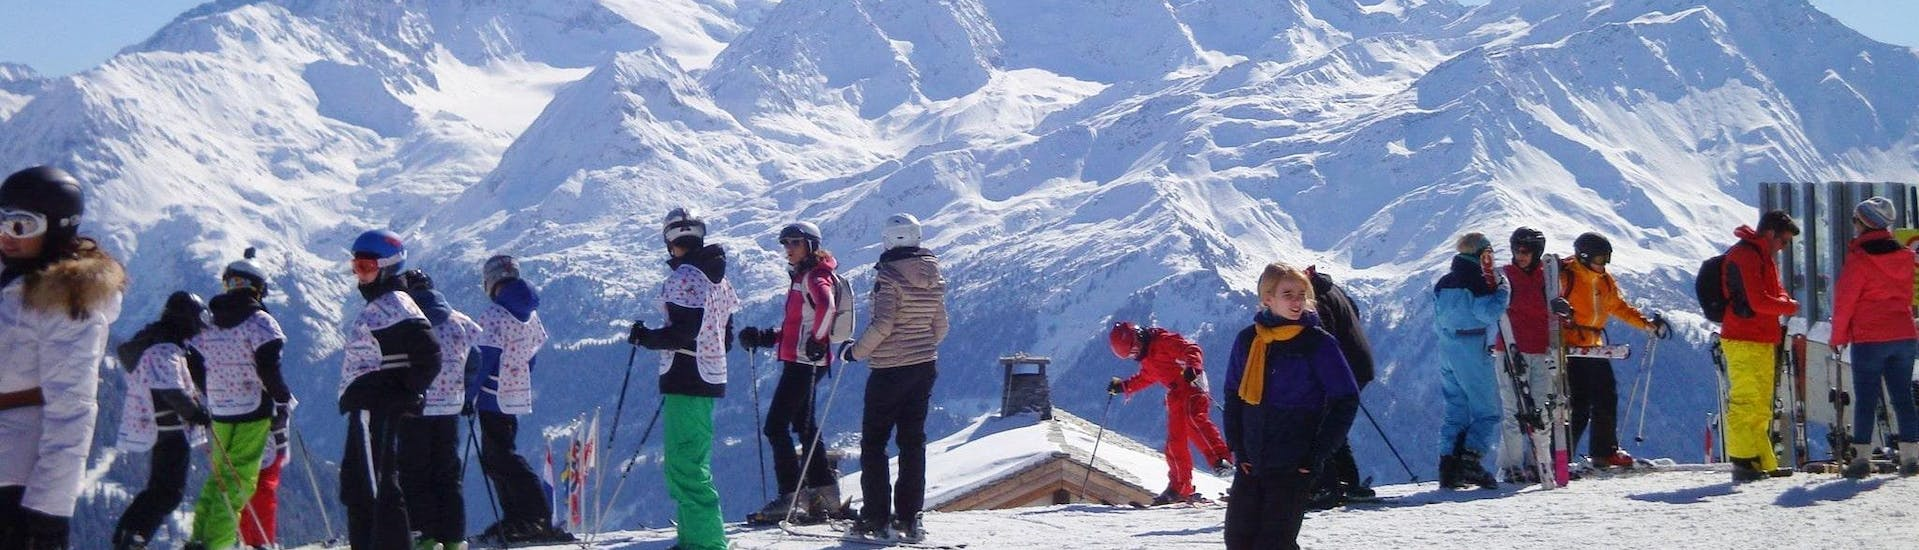 View of the top of the gondola station where start the Ski Lessons for Teens (from 13 years) - Advanced with the Swiss Ski School La Tzoumaz.